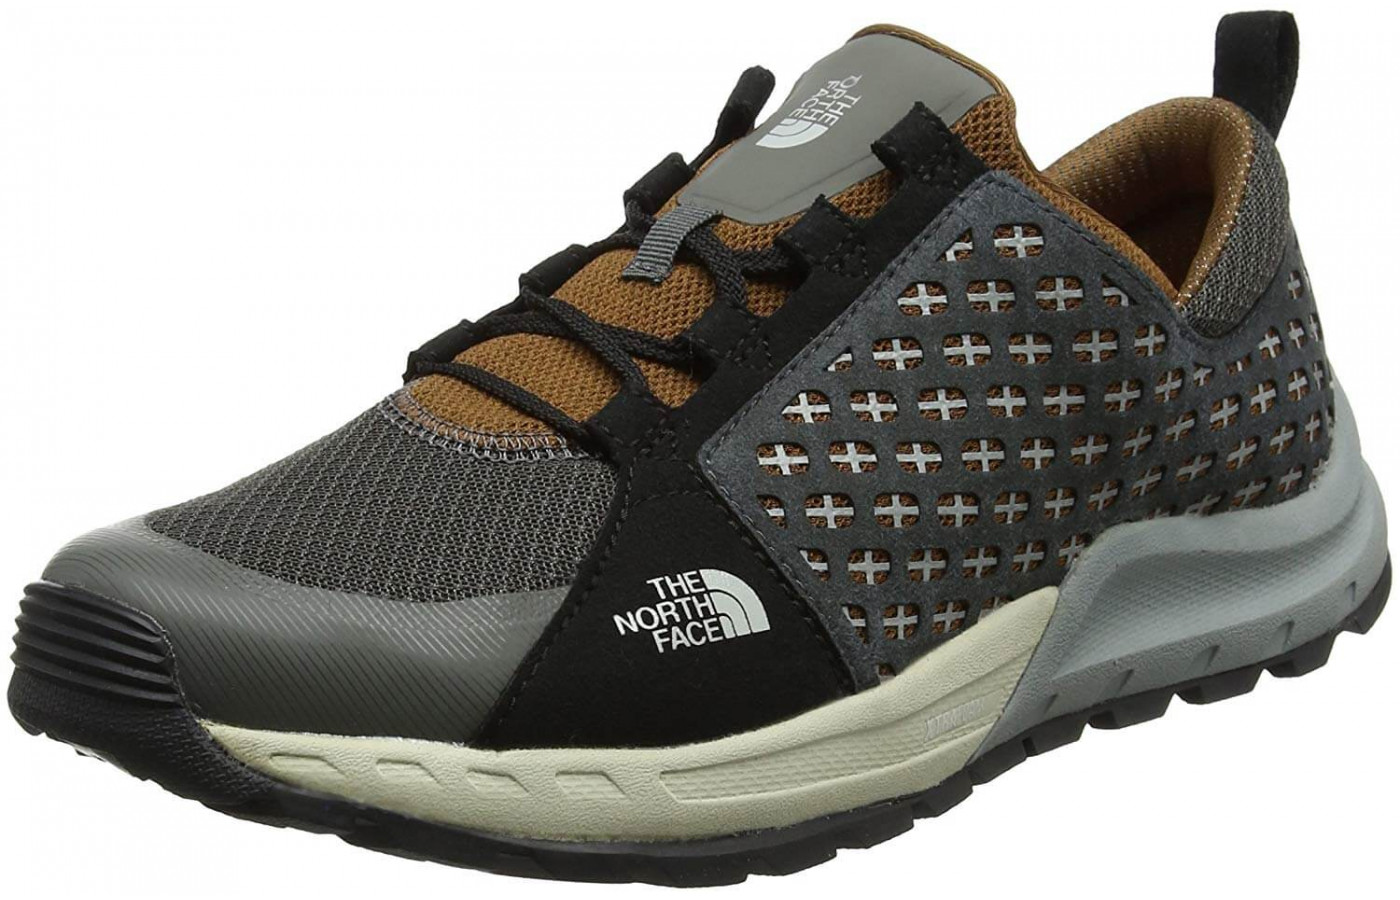 22da5a748e The North Face Mountain Sneaker - in Apr 2019